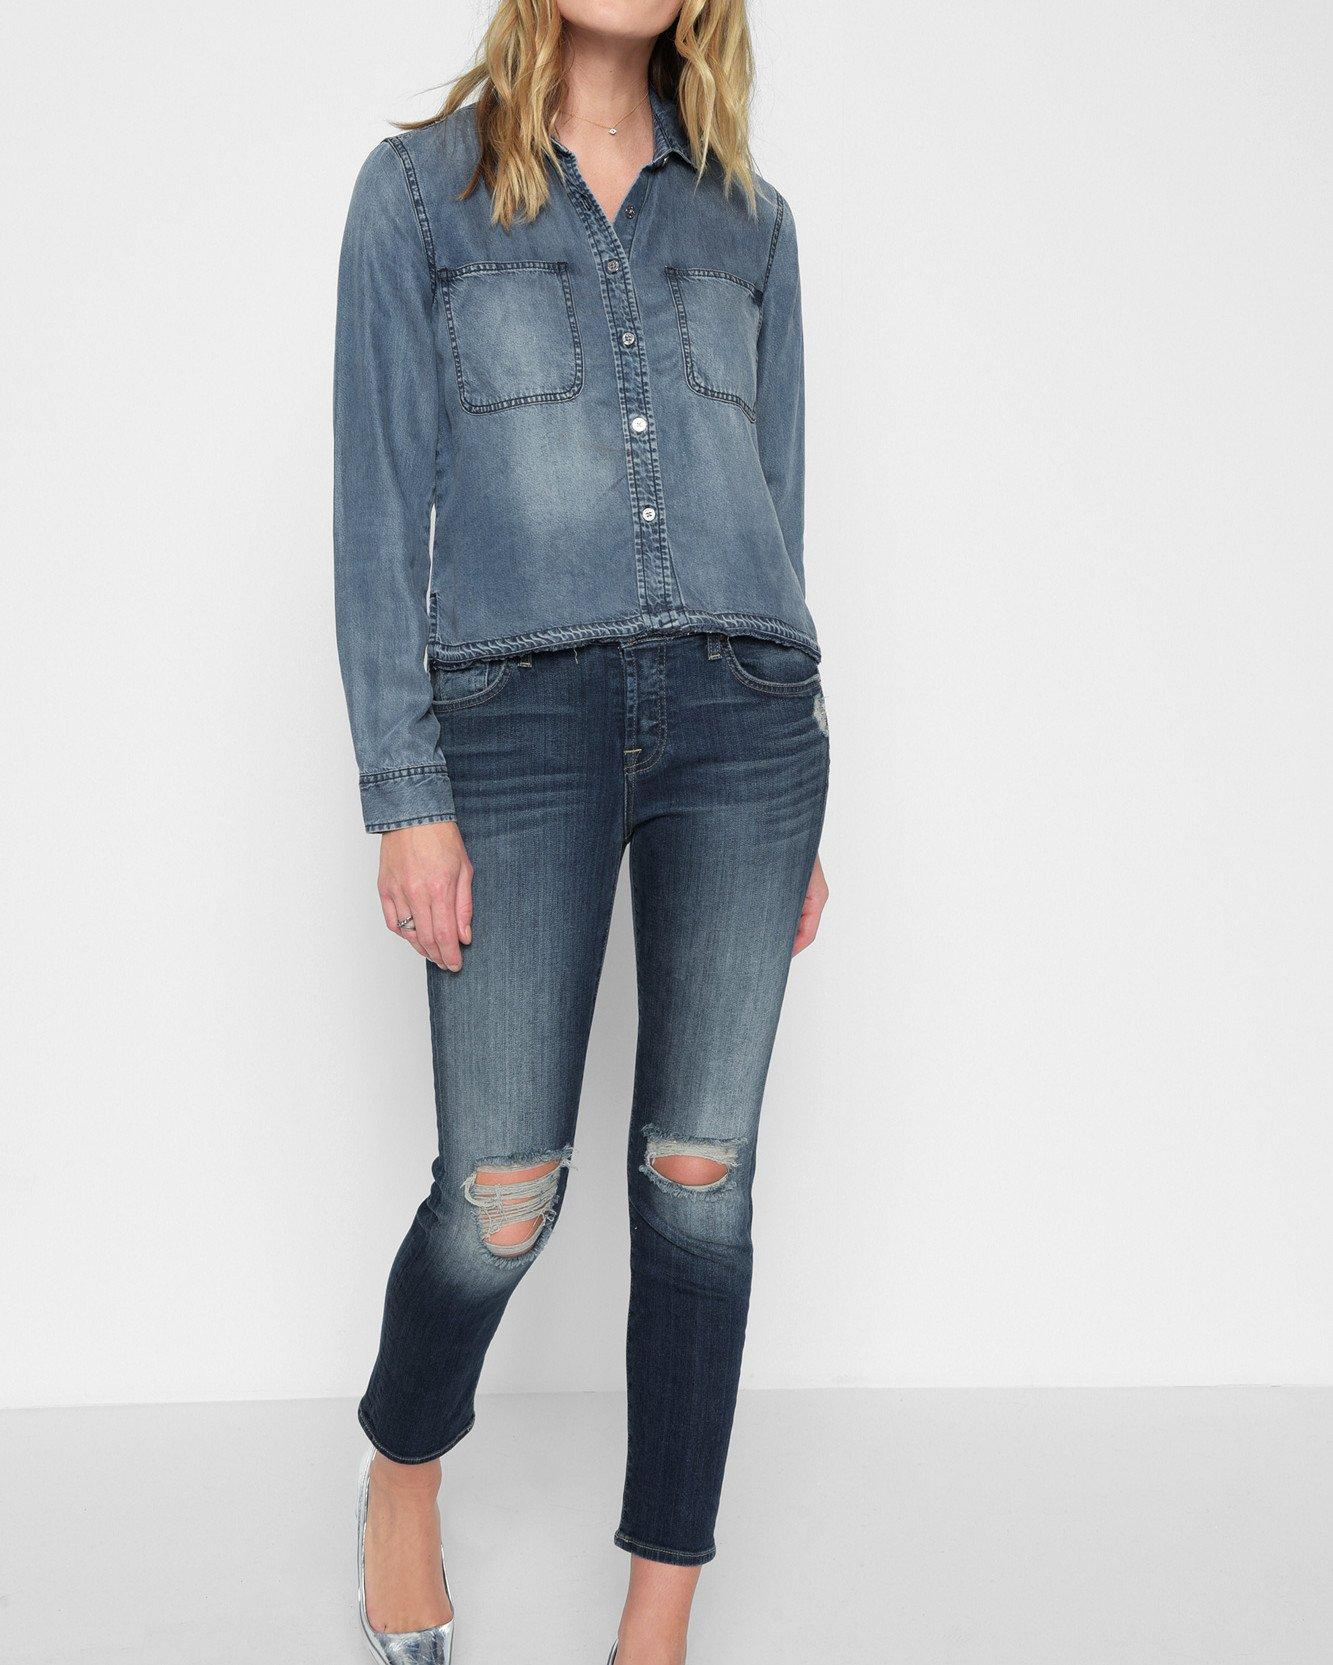 94b52003827 Lyst - 7 For All Mankind Step Hem Denim Shirt With Released Hem In Mineral  Blue in Blue